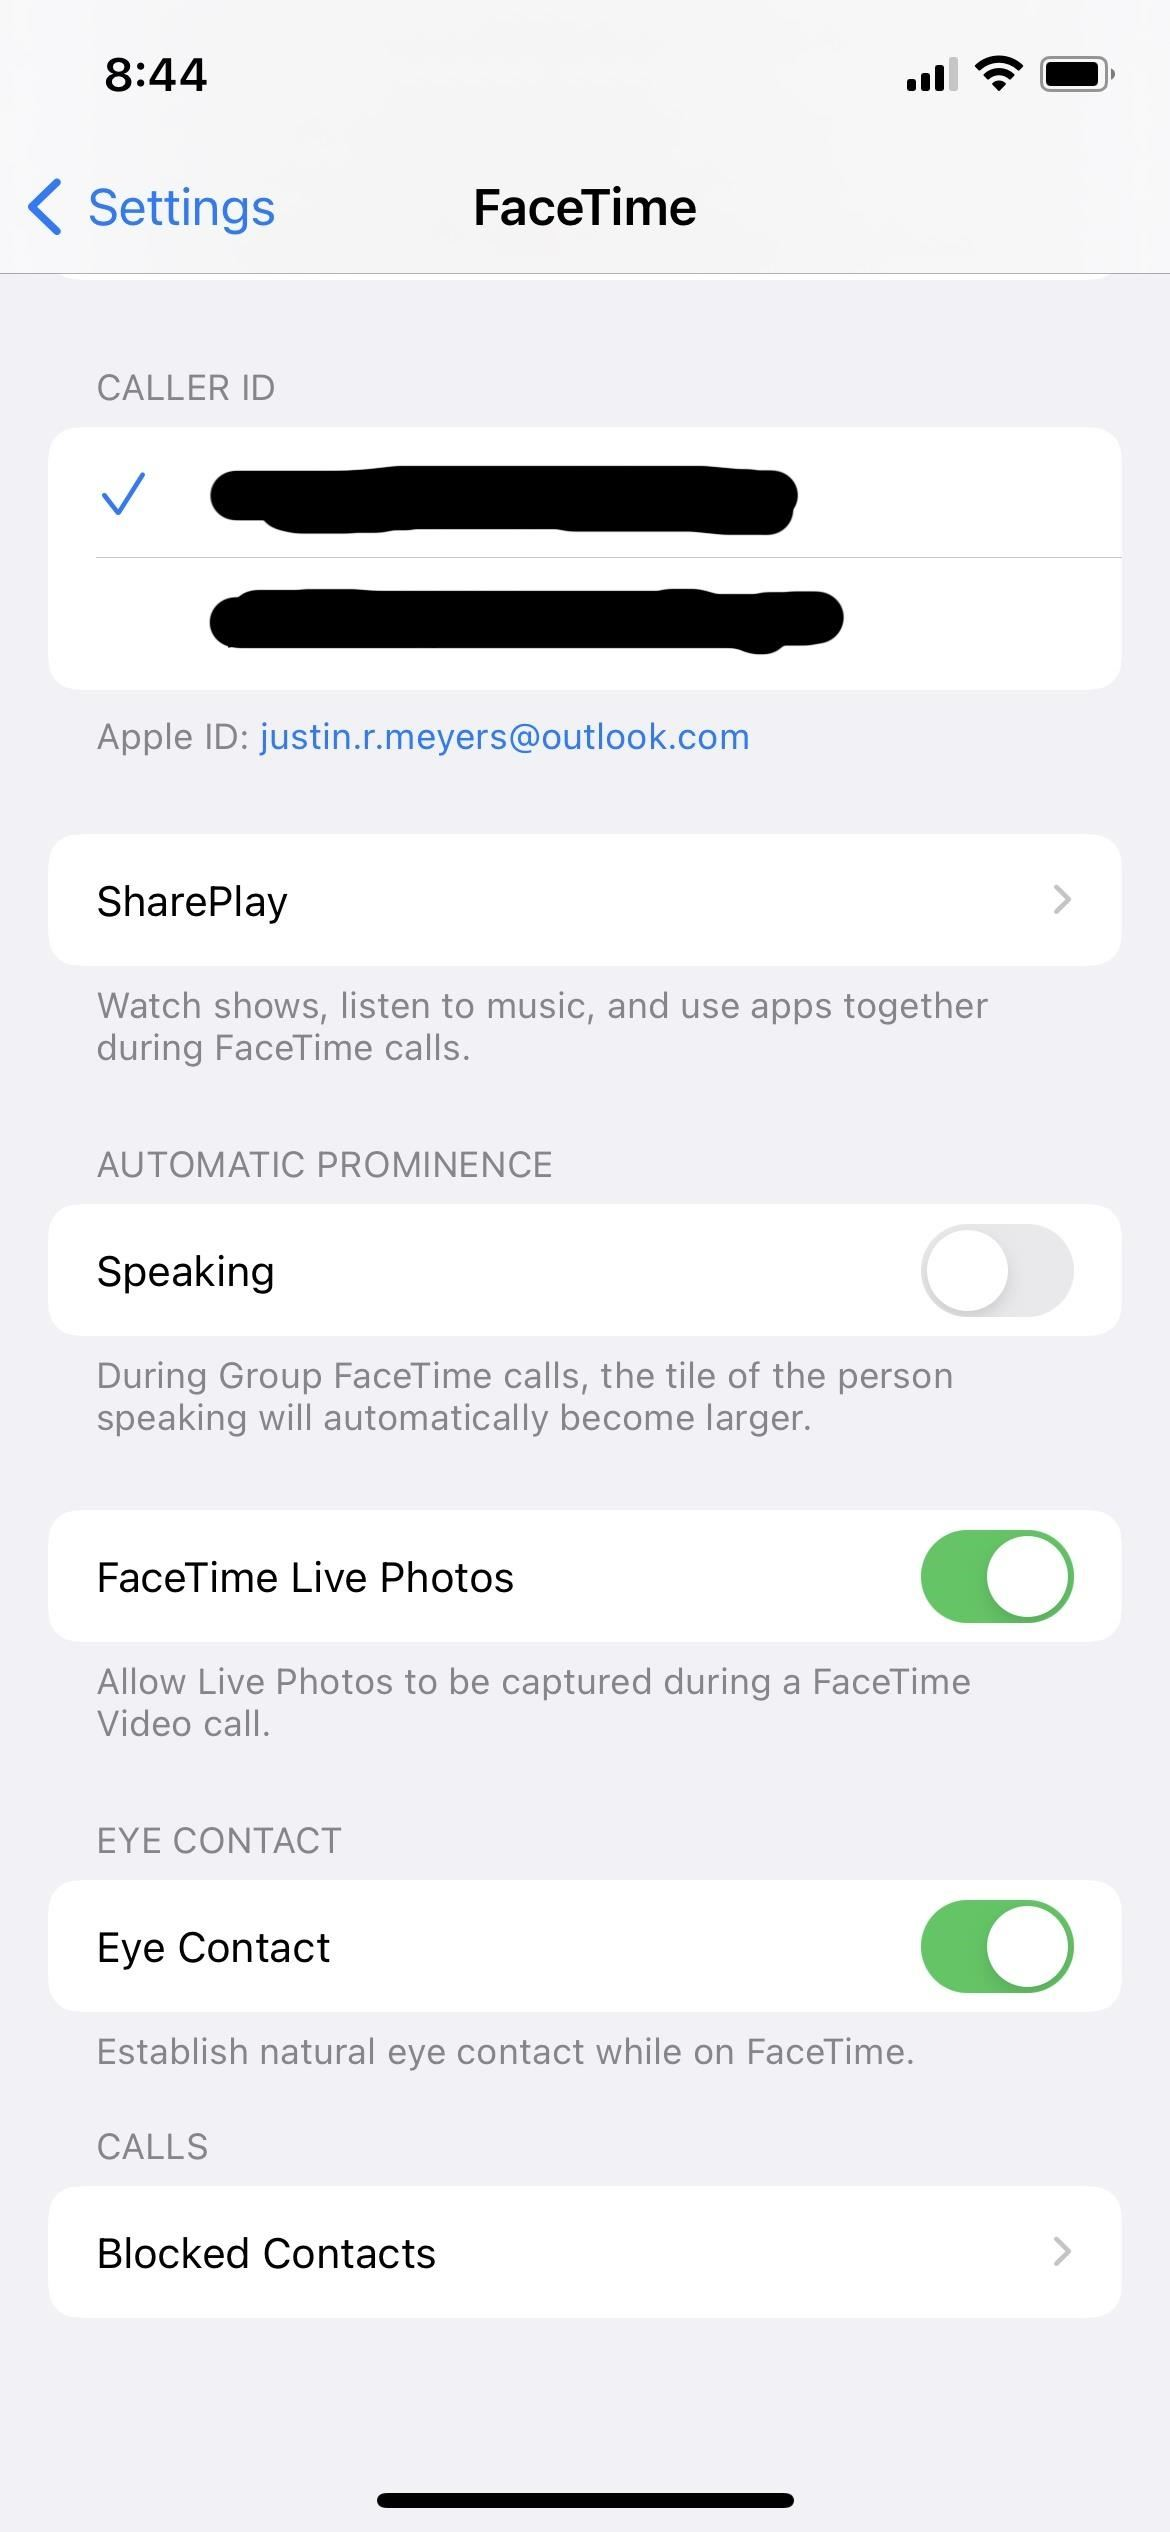 How to Screen Share on FaceTime in iOS 15 Using SharePlay